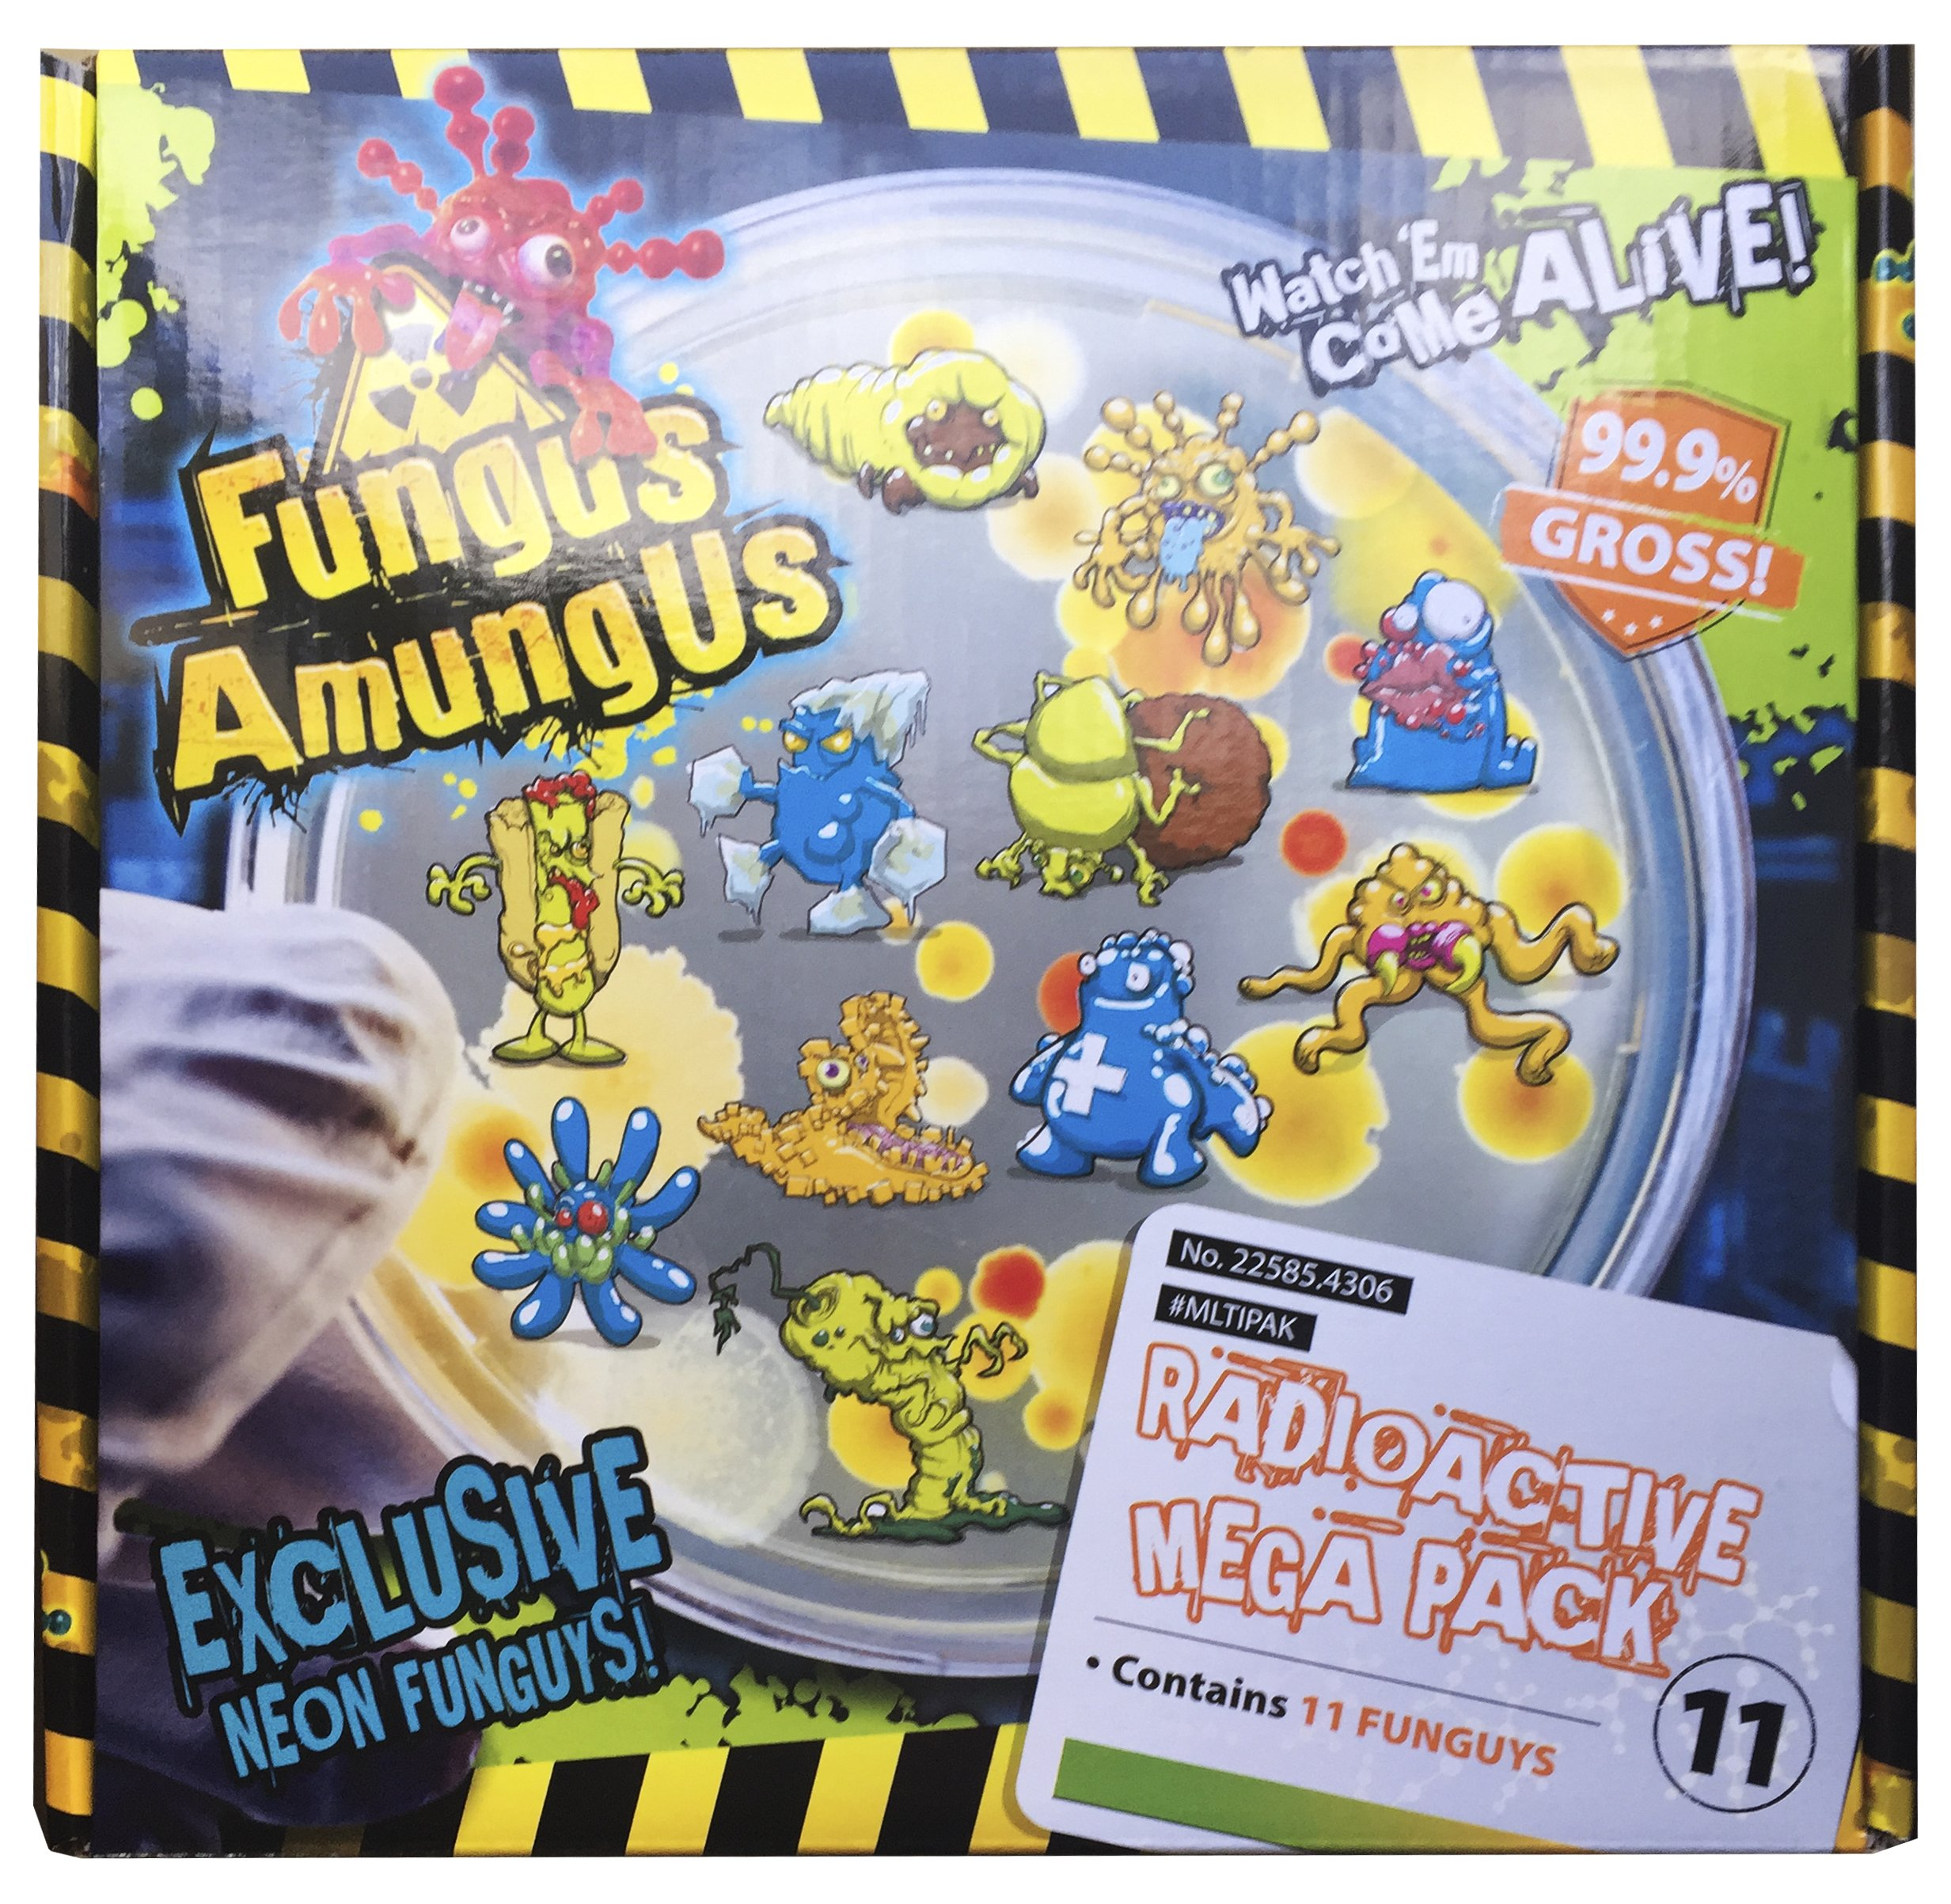 Fungus Amungus Super Neon Funguys Exclusive - 11 Mega Pack